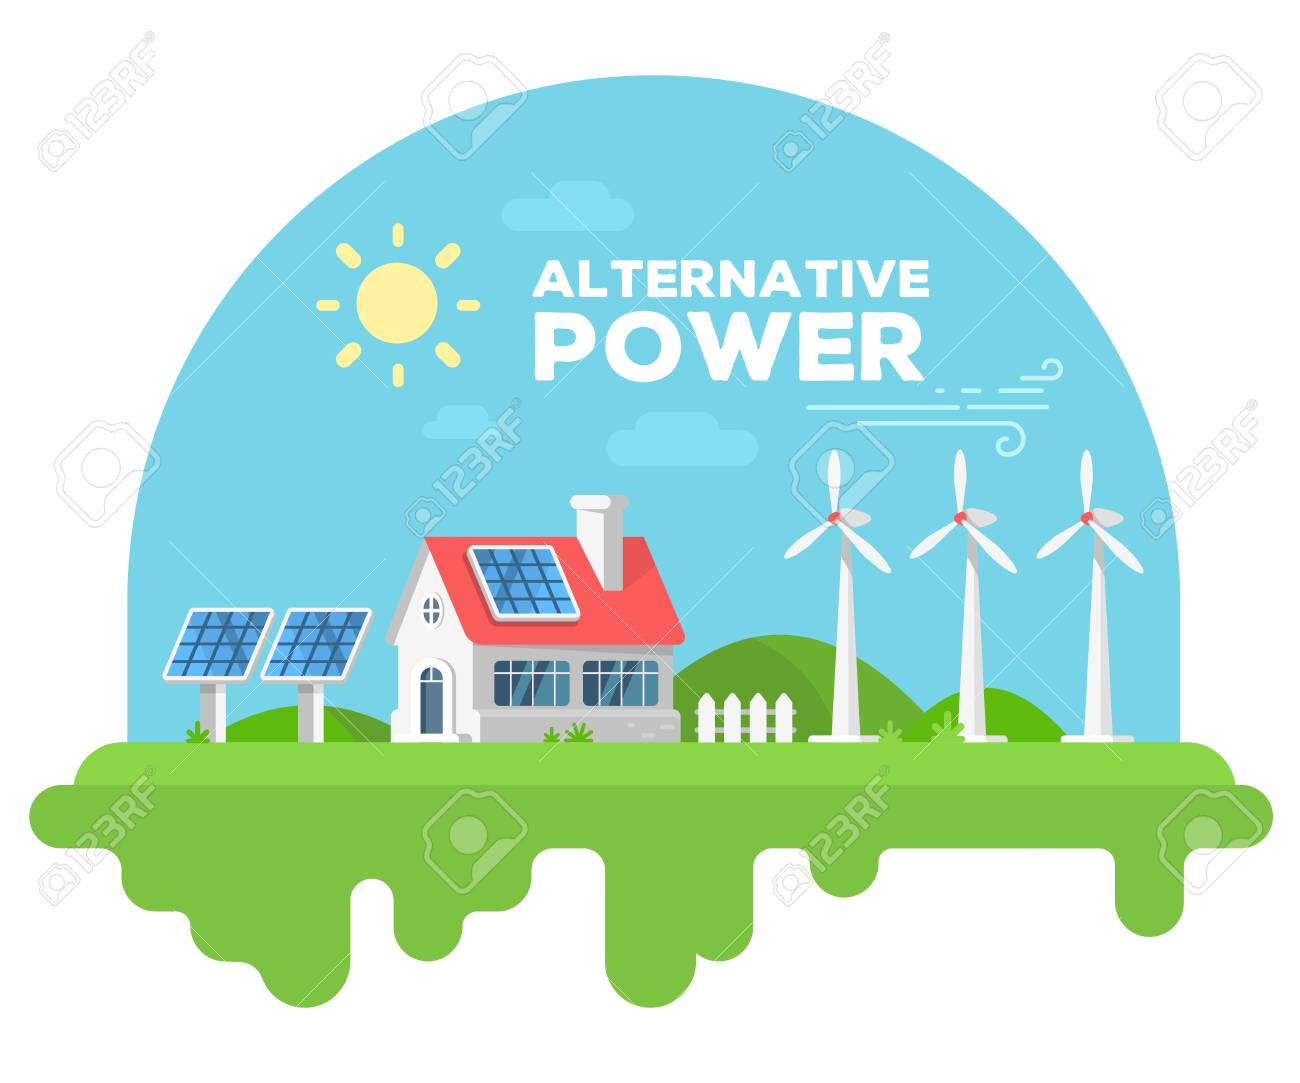 Vector illustration of beautiful house with chimney and fence on green grass. Alternative energy sources concept with windmill and solar panel on white background. Flat style design for web, site, banner, poster - 80258298